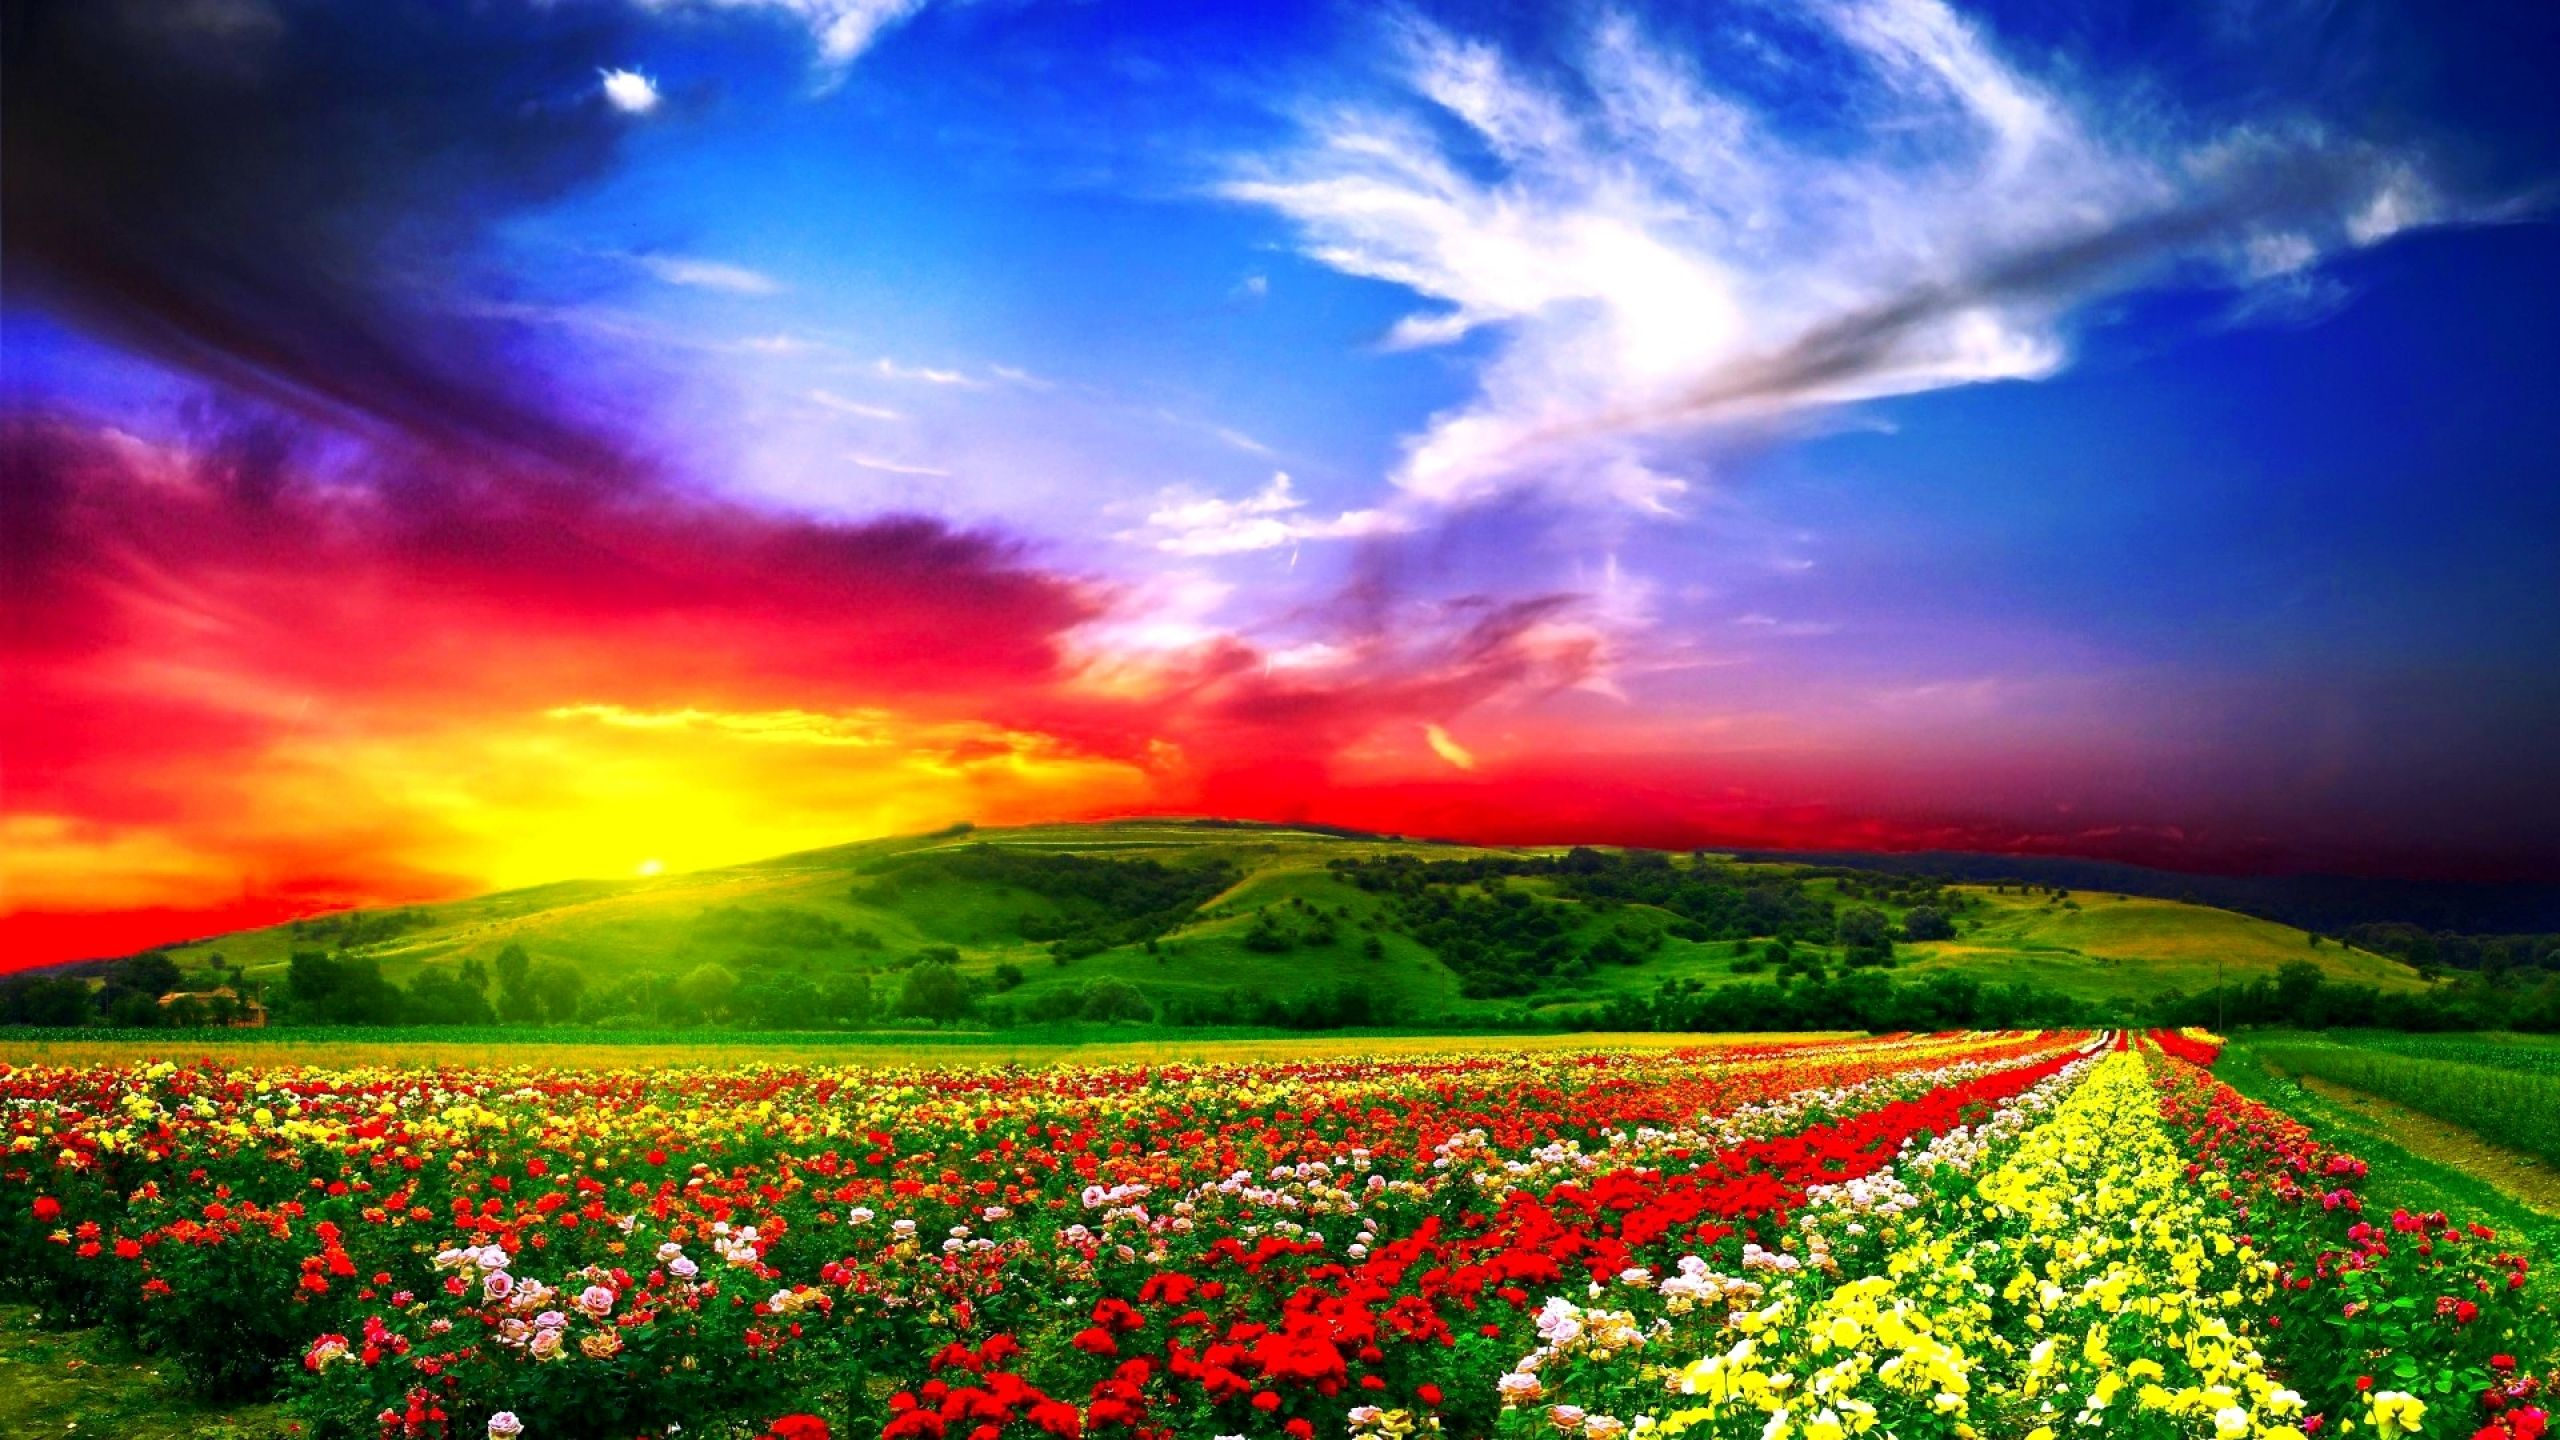 Download wallpaper x flowers field beautiful mac imac